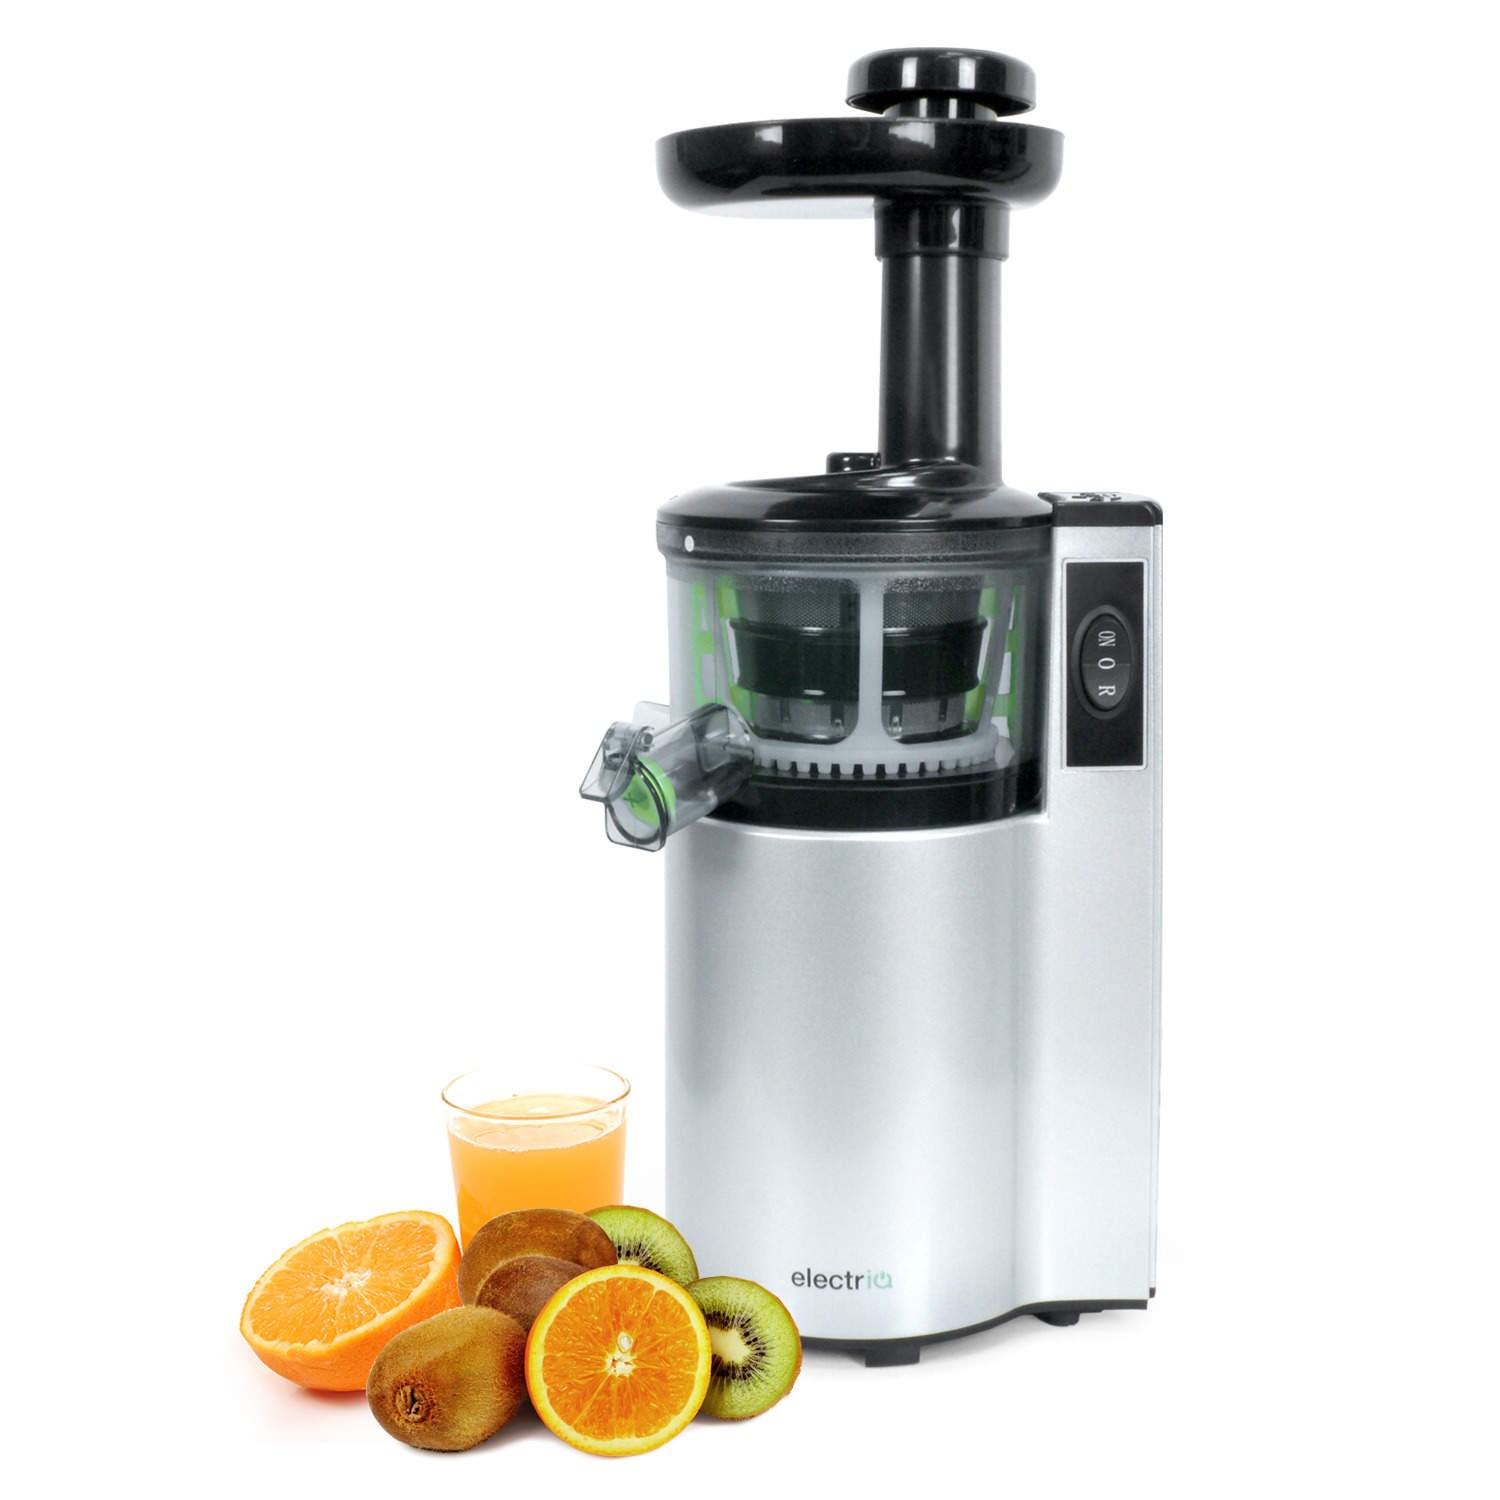 Slow Juicer Ou Juicer : ElectriQ vertical Slow Masticating Juicer Fruit vegetable Juice Extractor eBay